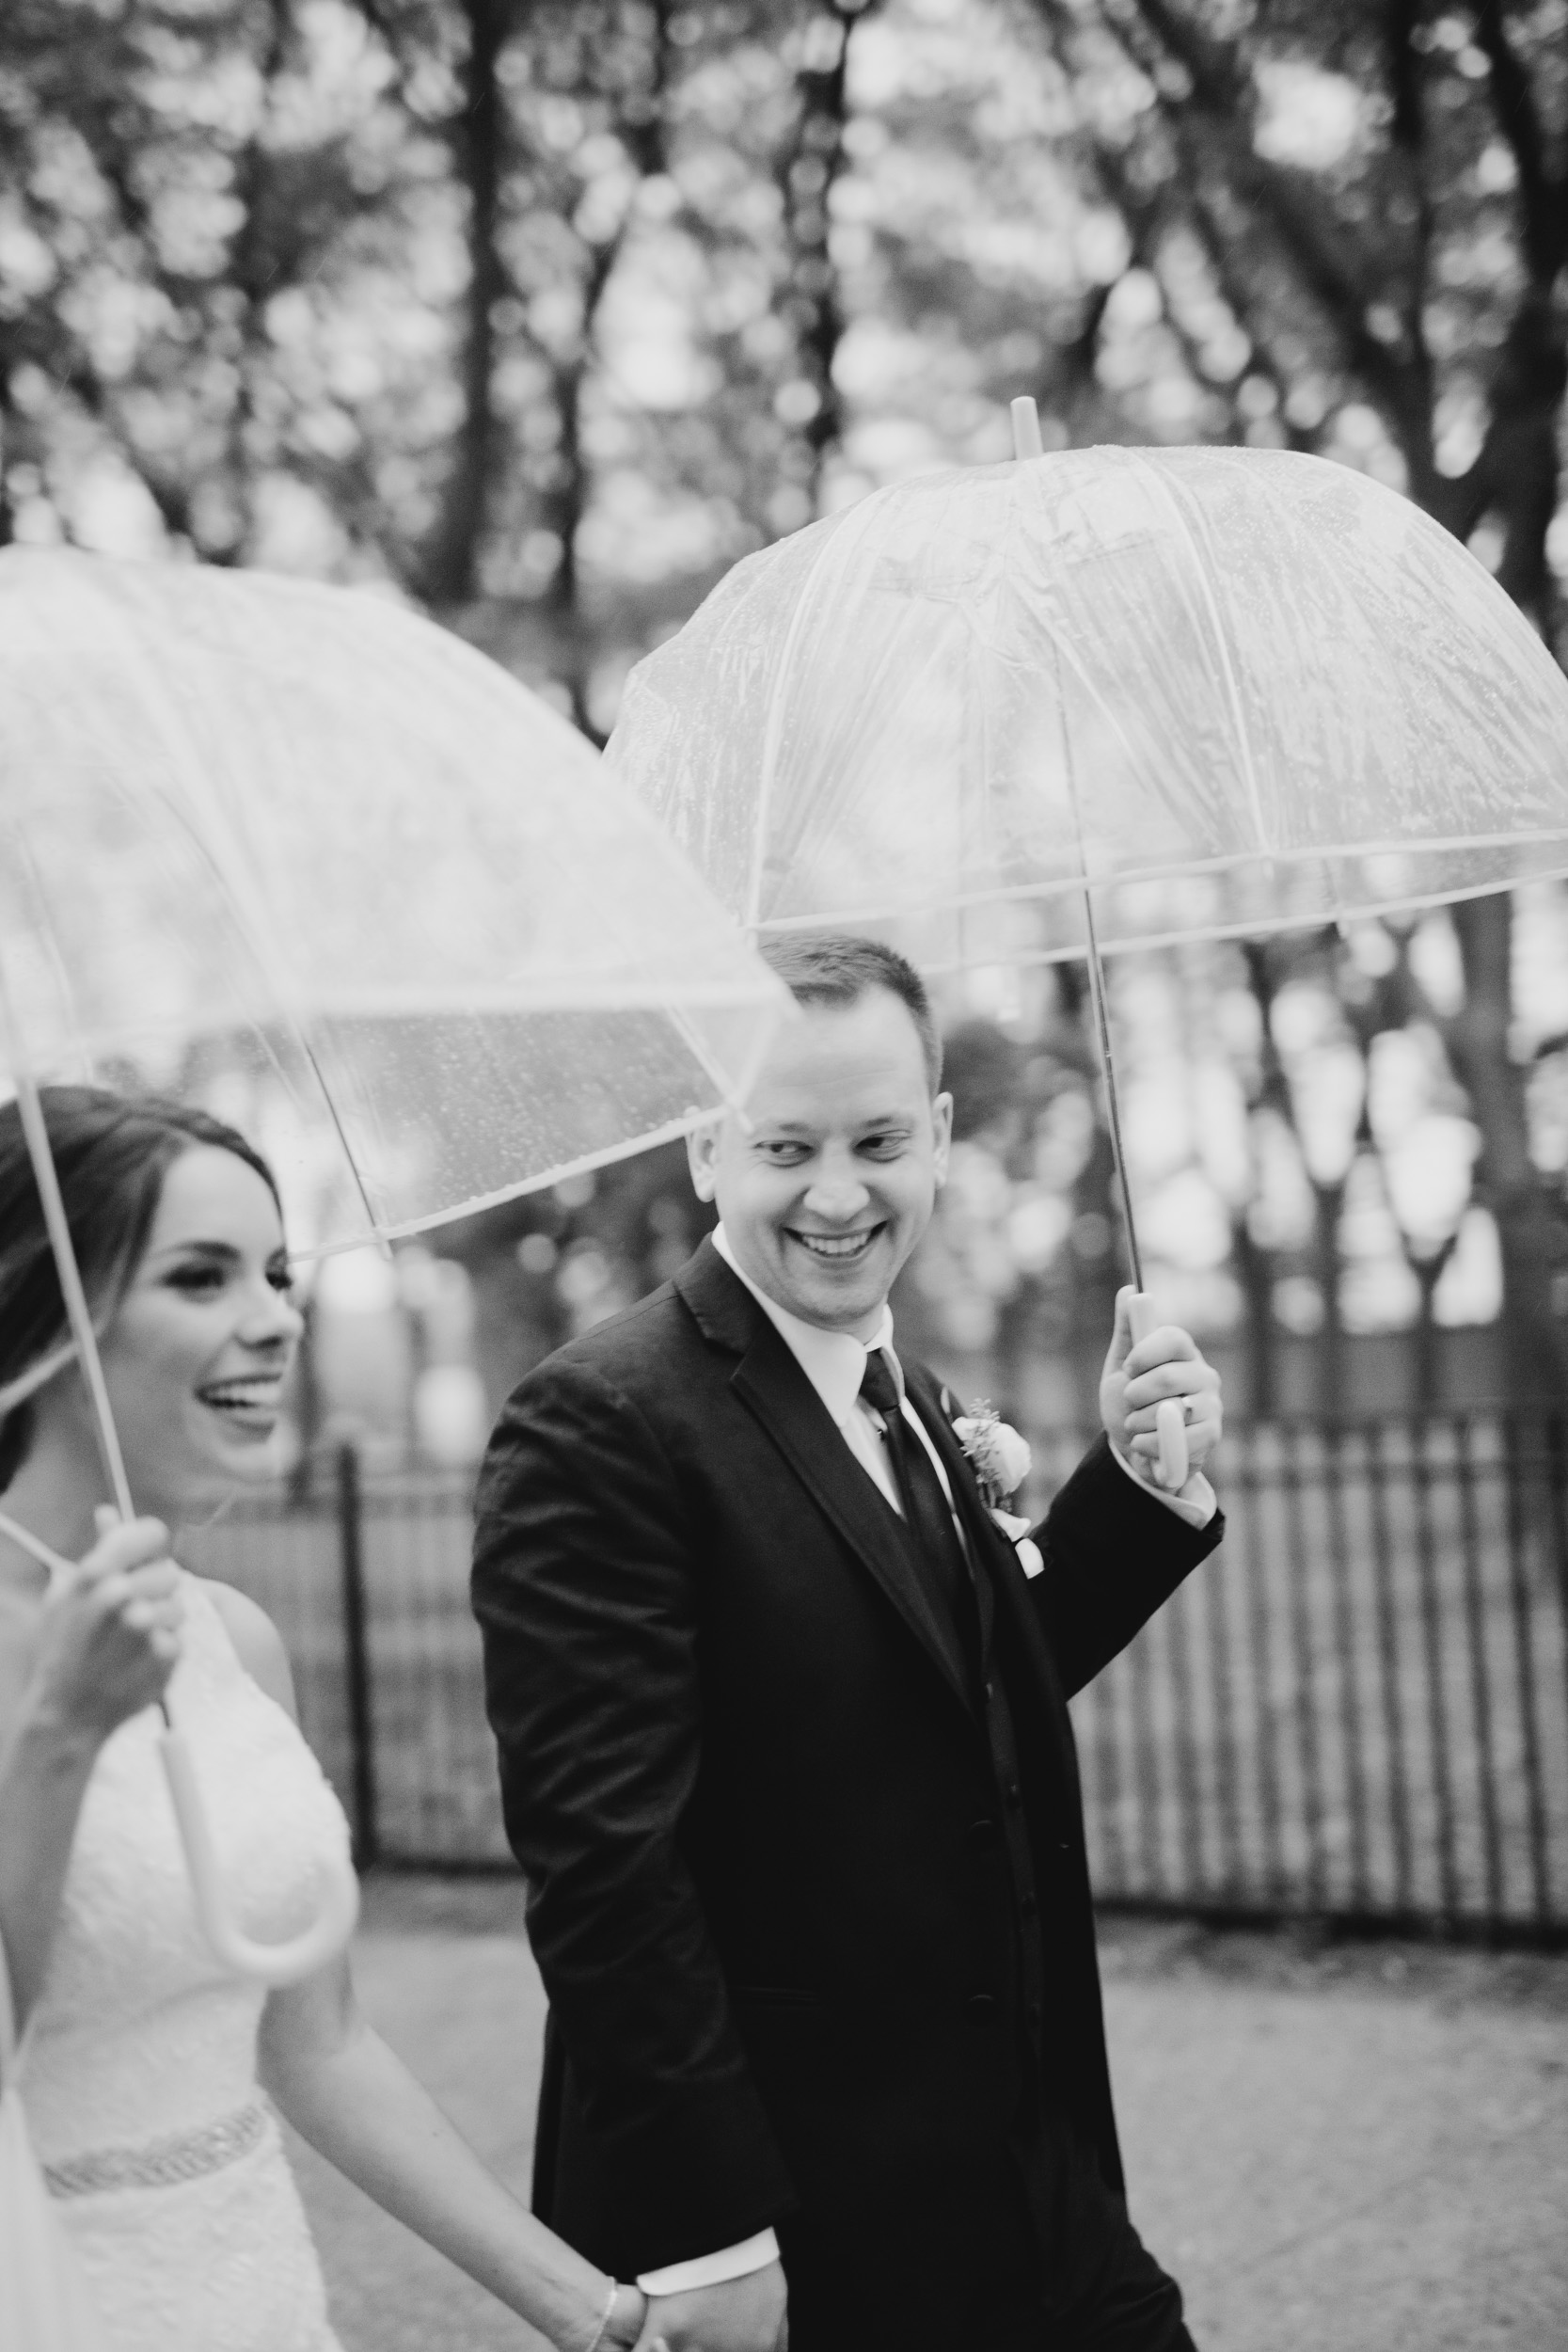 Downtown Chicago Wedding_Polly C Photography 1706174007.jpg